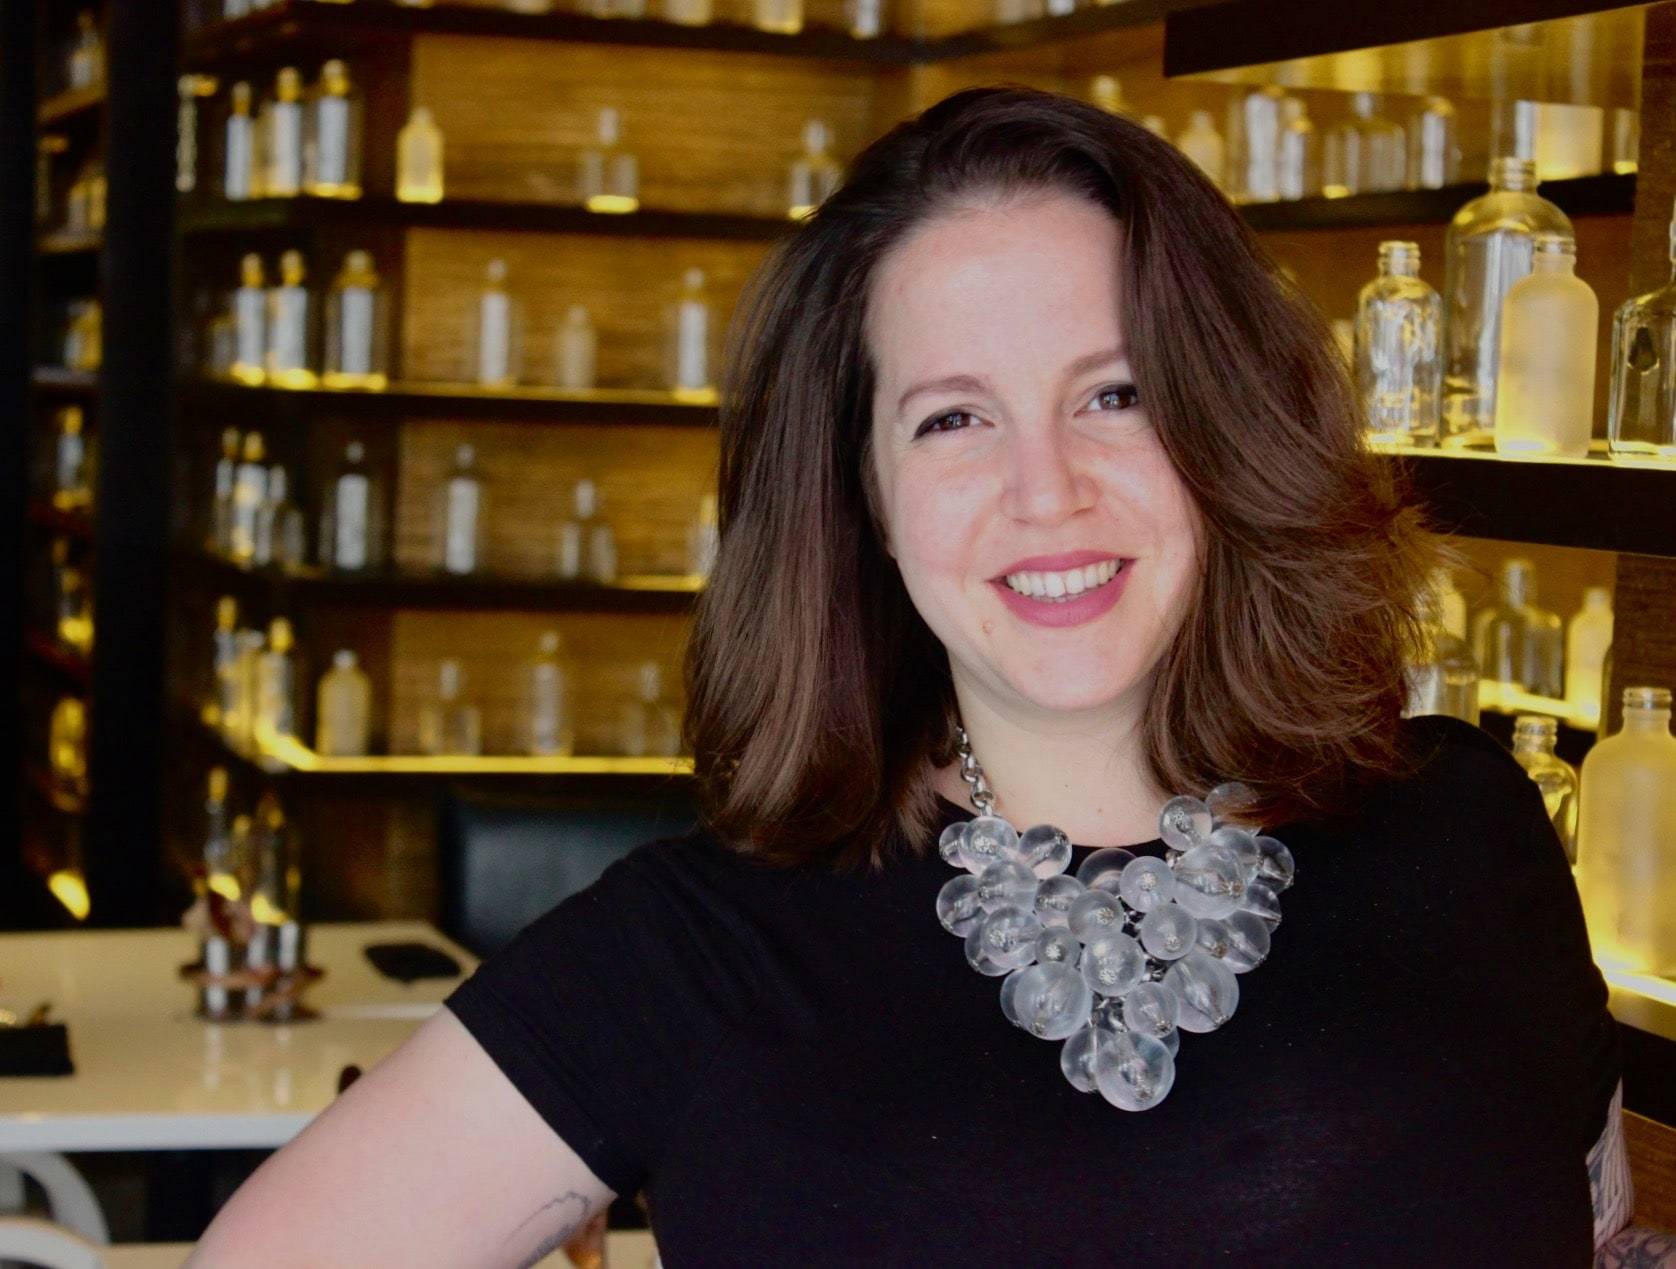 Sustainable Sipping: How SoBou bartender Amanda Thomas marries tasty cocktails, sustainability